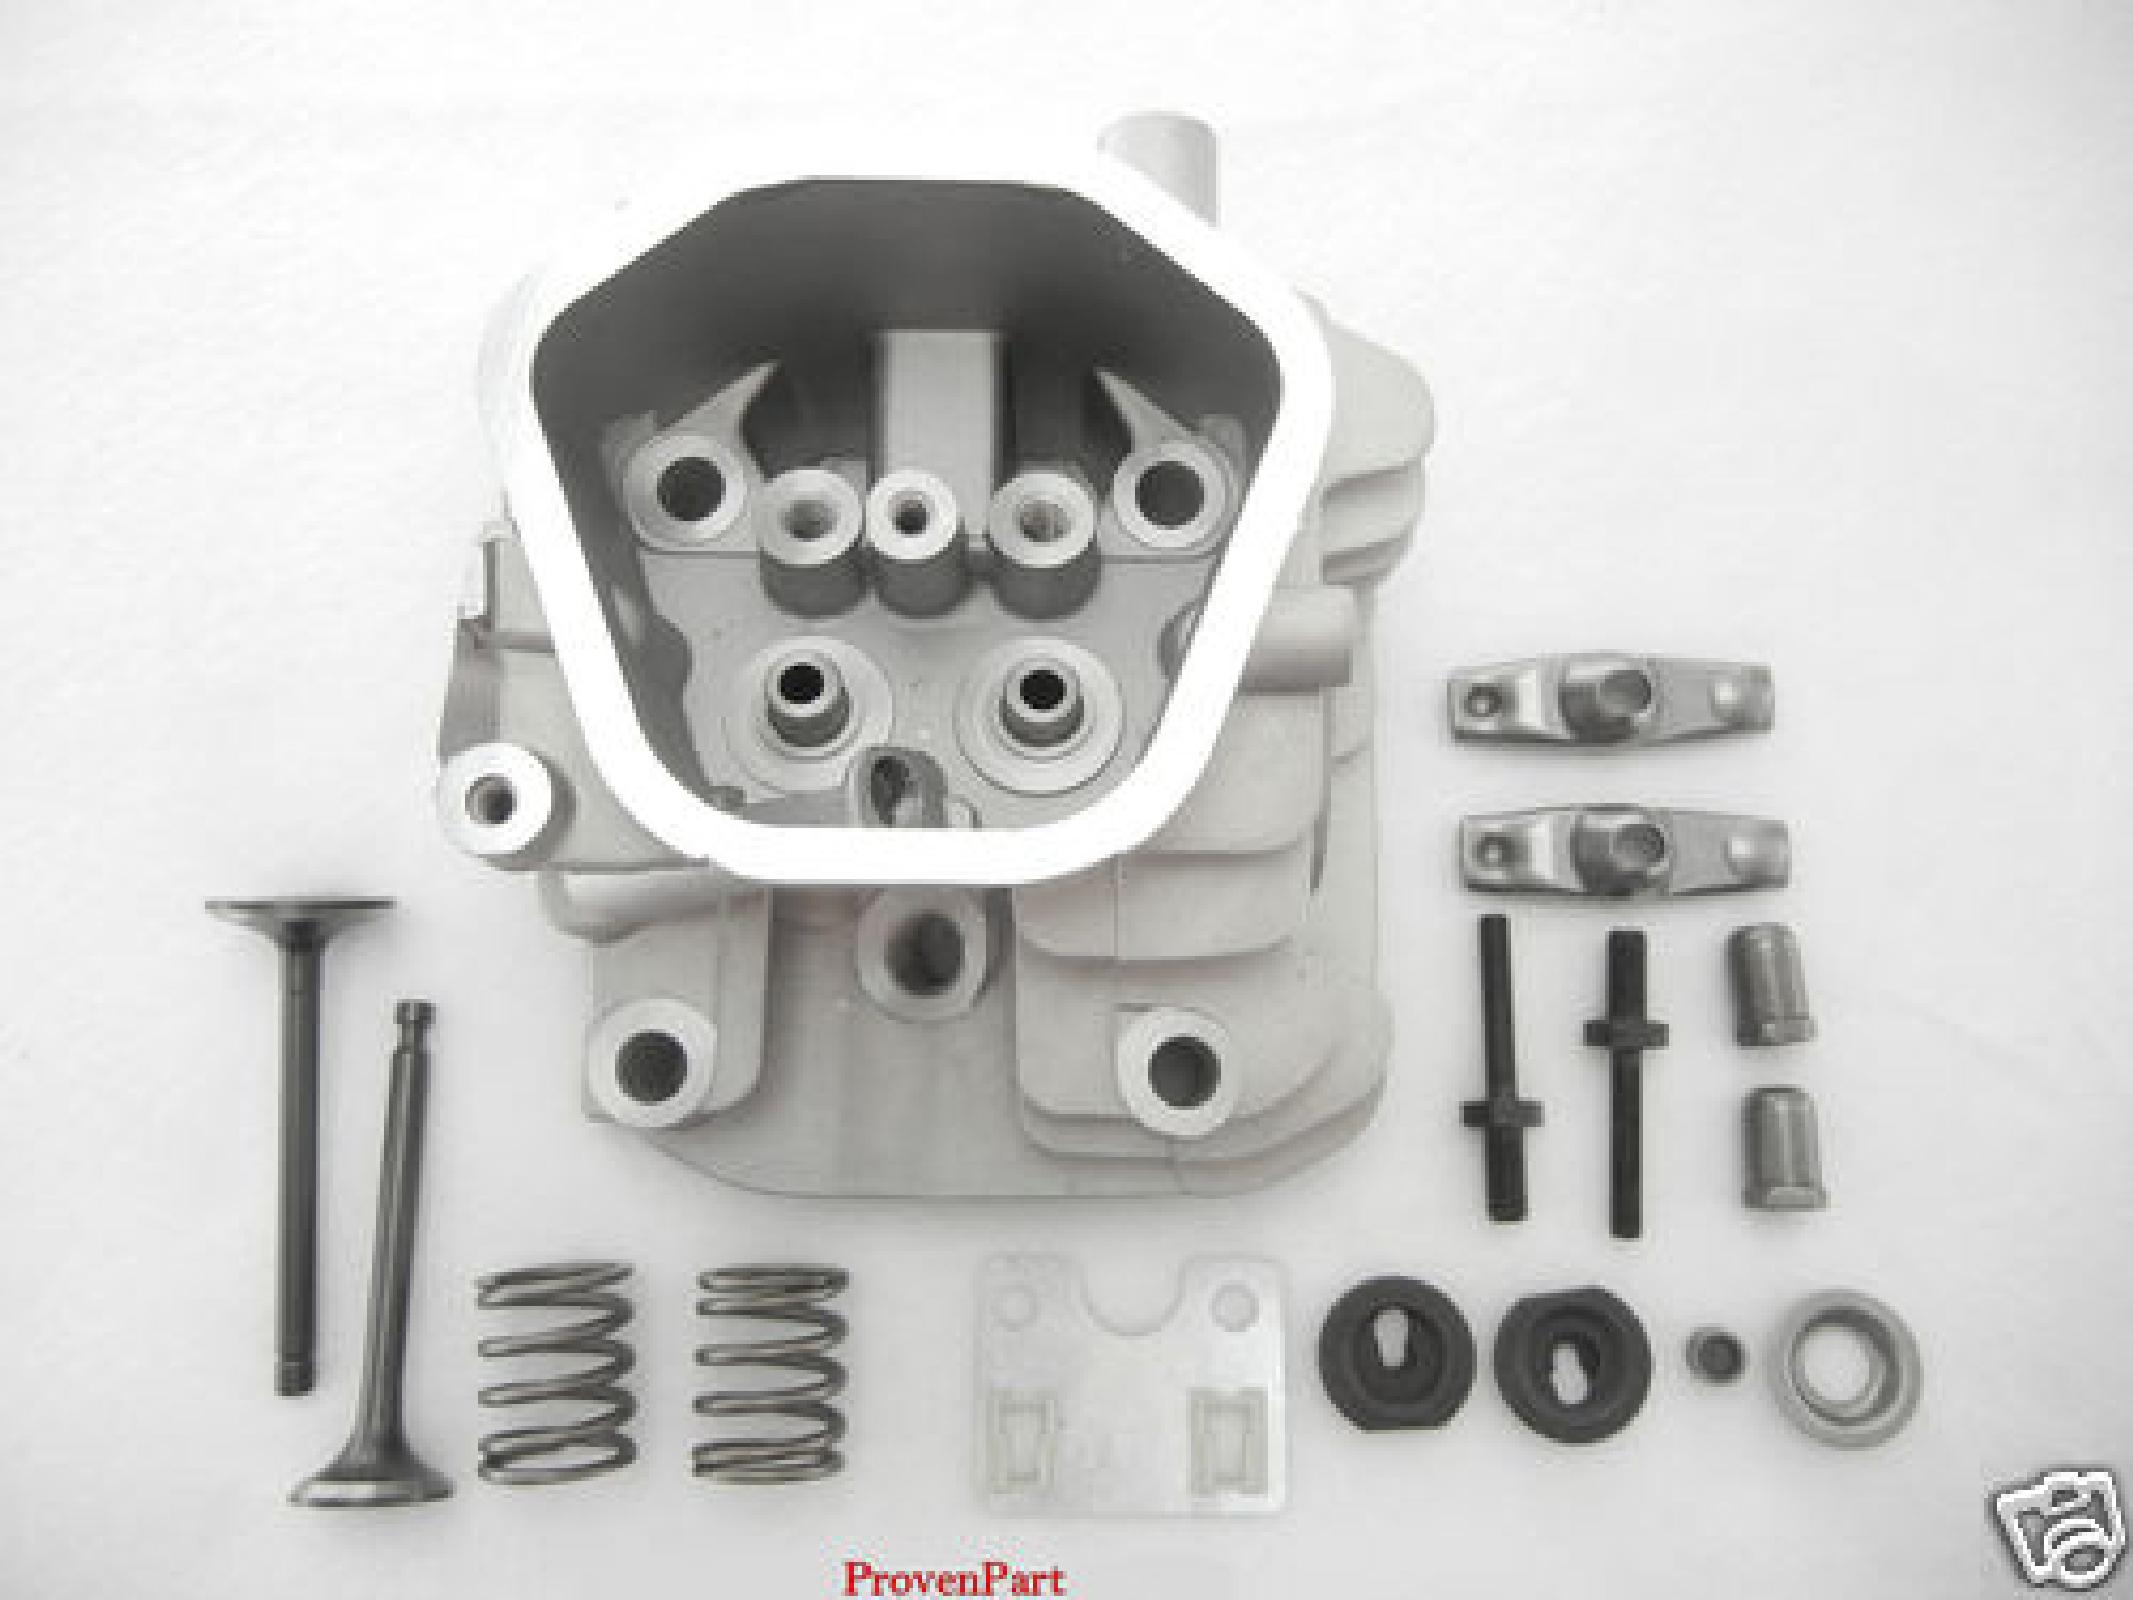 Proven Part GX340 Cylinder head kit